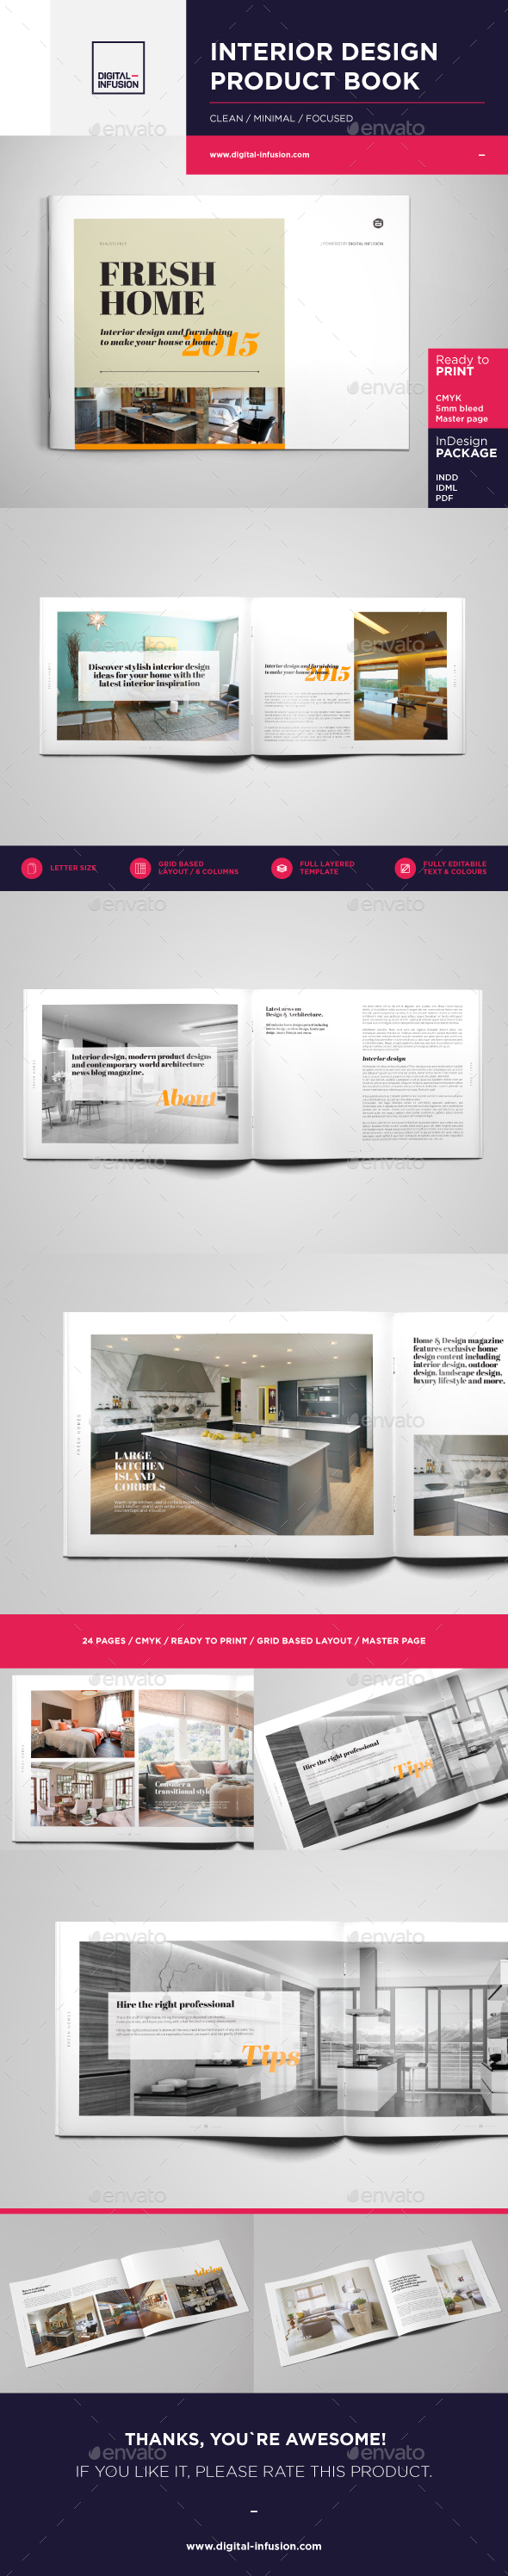 interior design brochure catalog catalogs brochures - Interior Design Pages